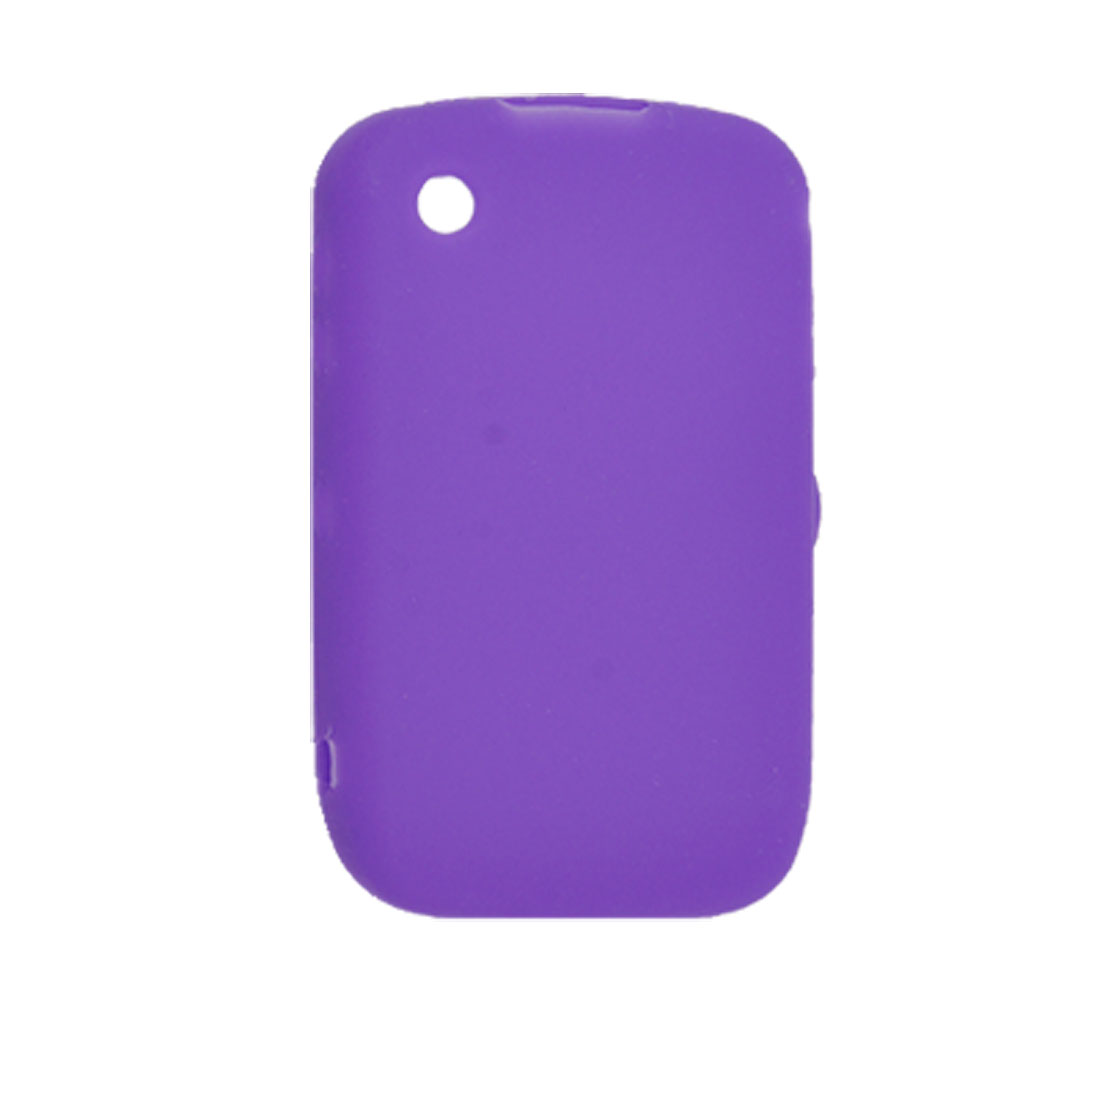 Protective Purple Silicone Cover Case for Blackberry Curve 8520